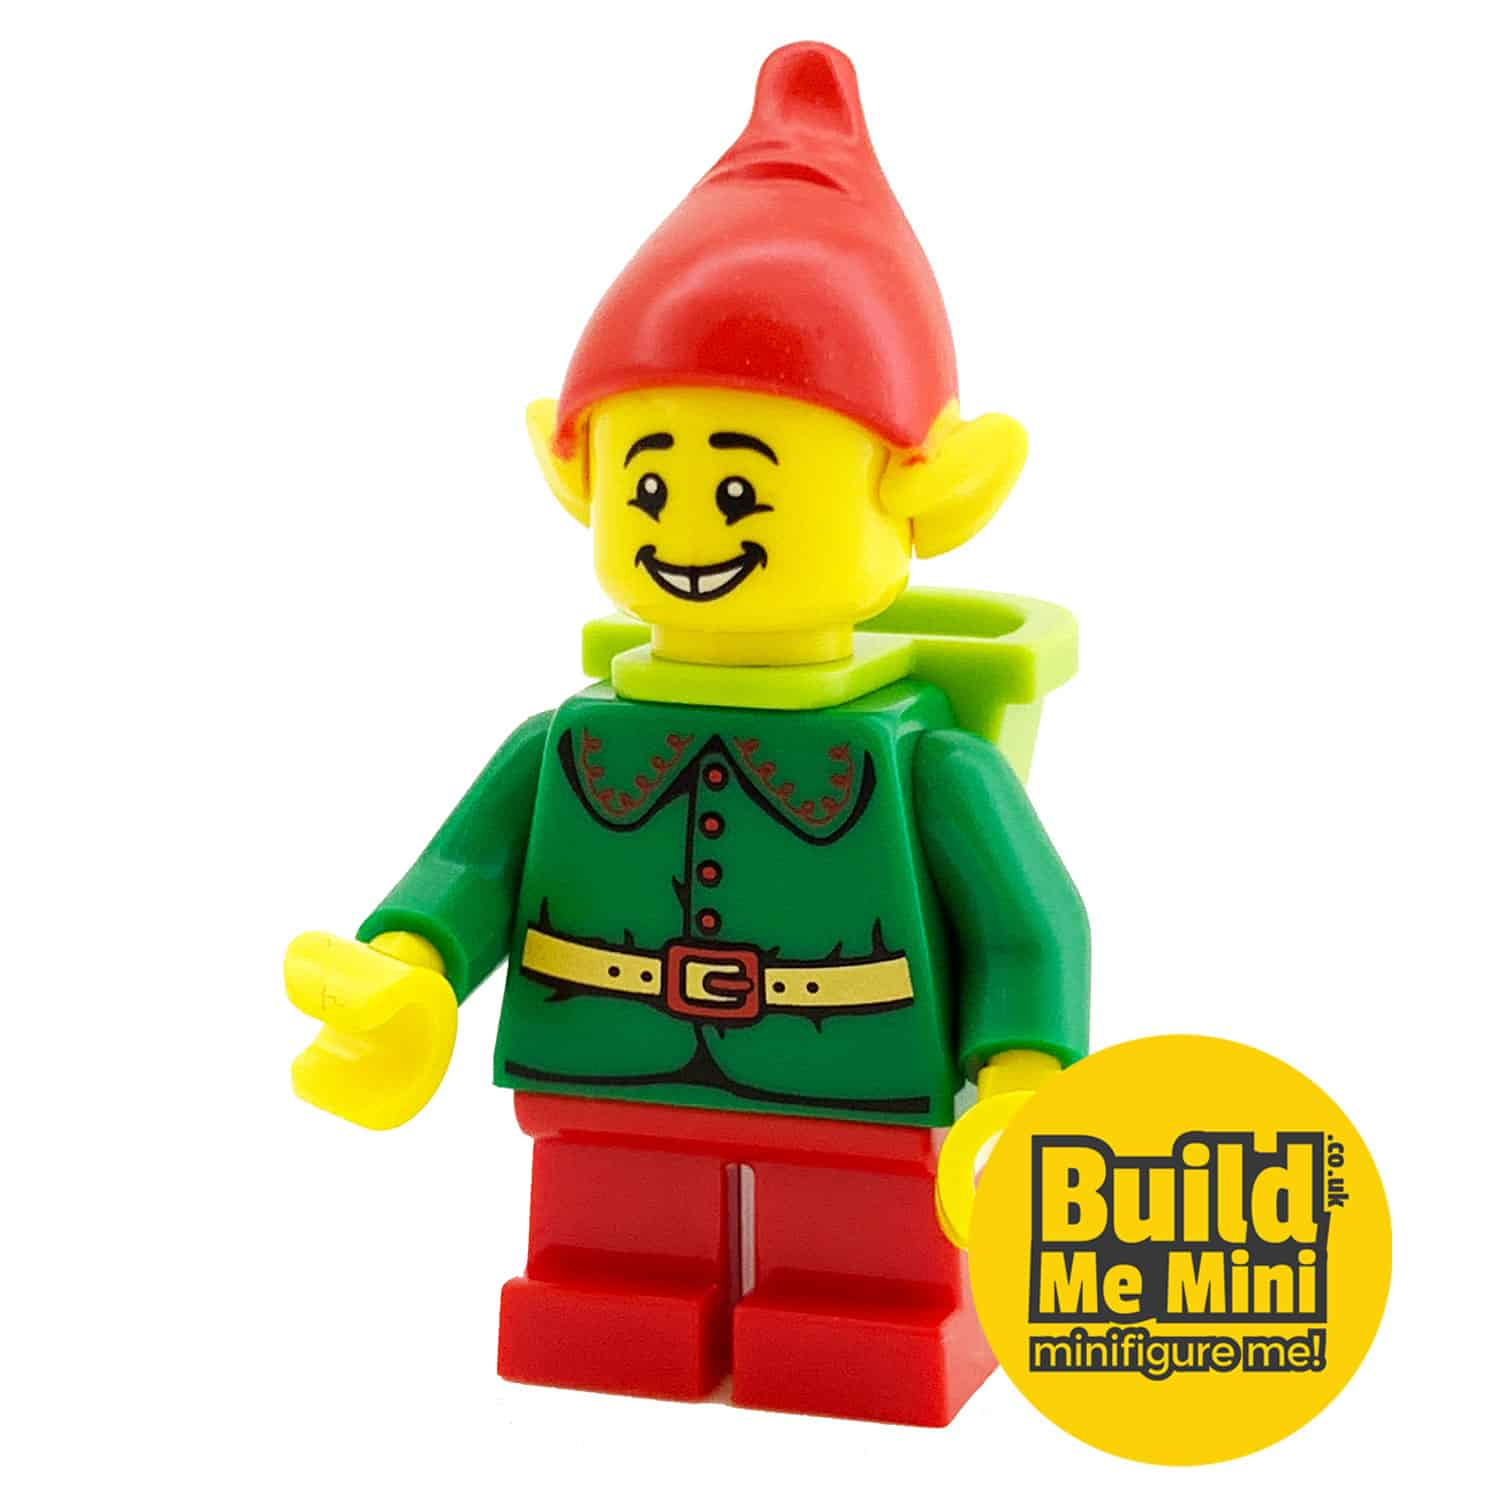 LEGO Christmas Elf (In Store Version, Red Hat)